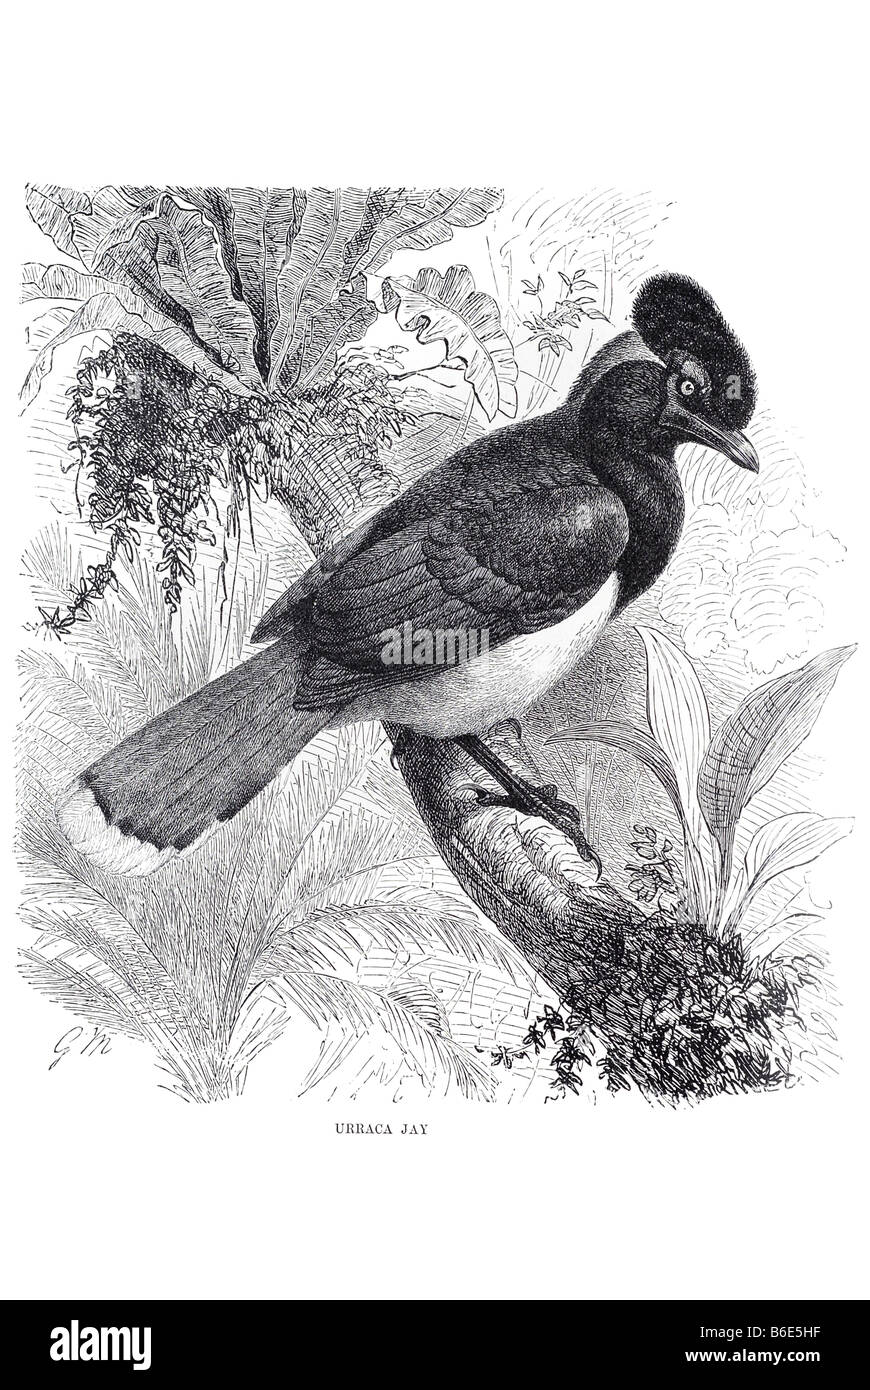 urraca jay Magpies are passerine birds of the crow family, Corvidae. The names 'jay' and 'magpie' - Stock Image